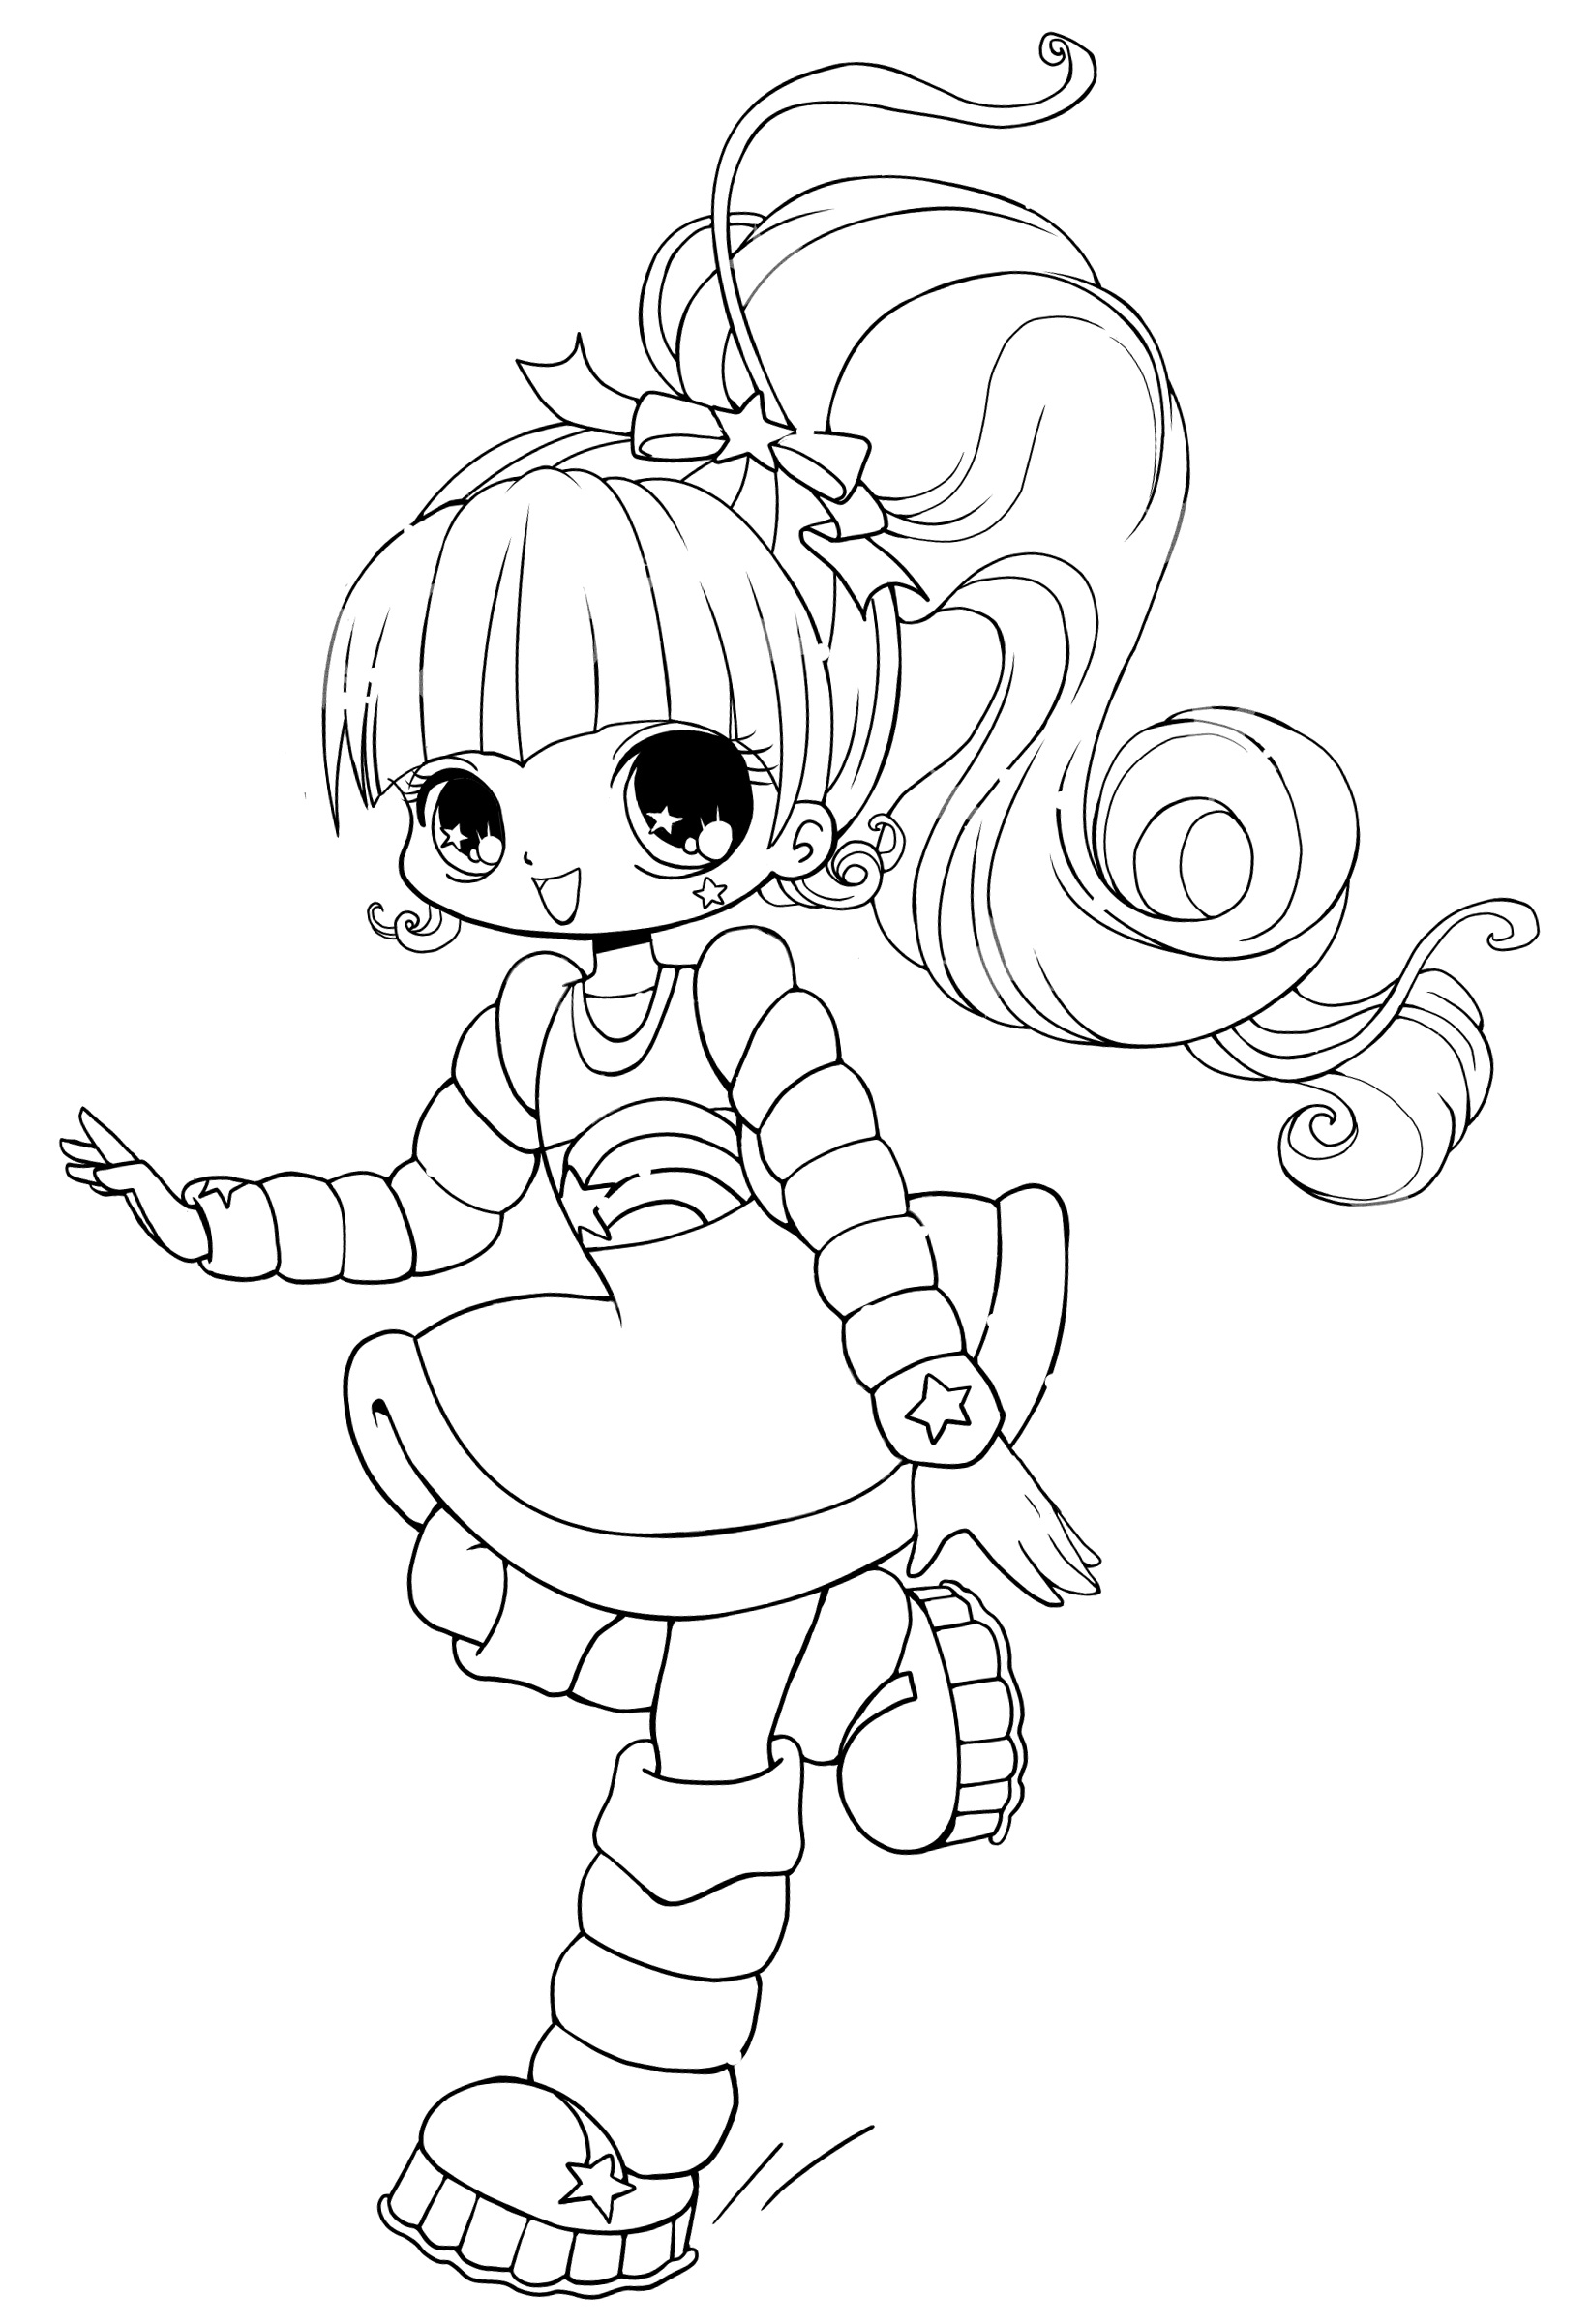 coloring pics coloring pages for girls best coloring pages for kids pics coloring 1 1